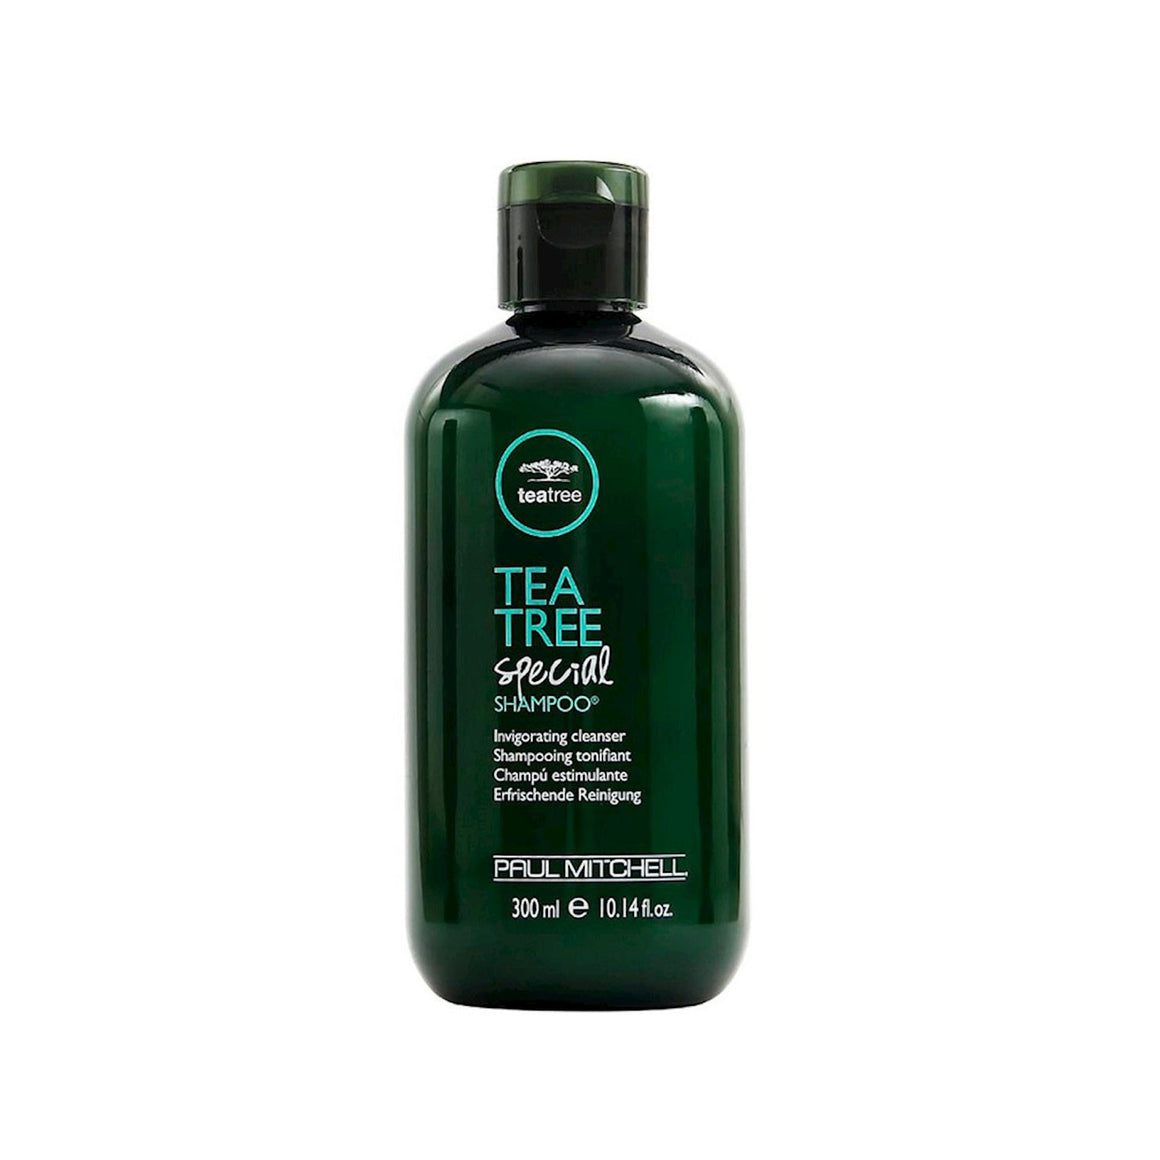 Paul Mitchell - Shampooing (Tea Tree Special) - 300ml